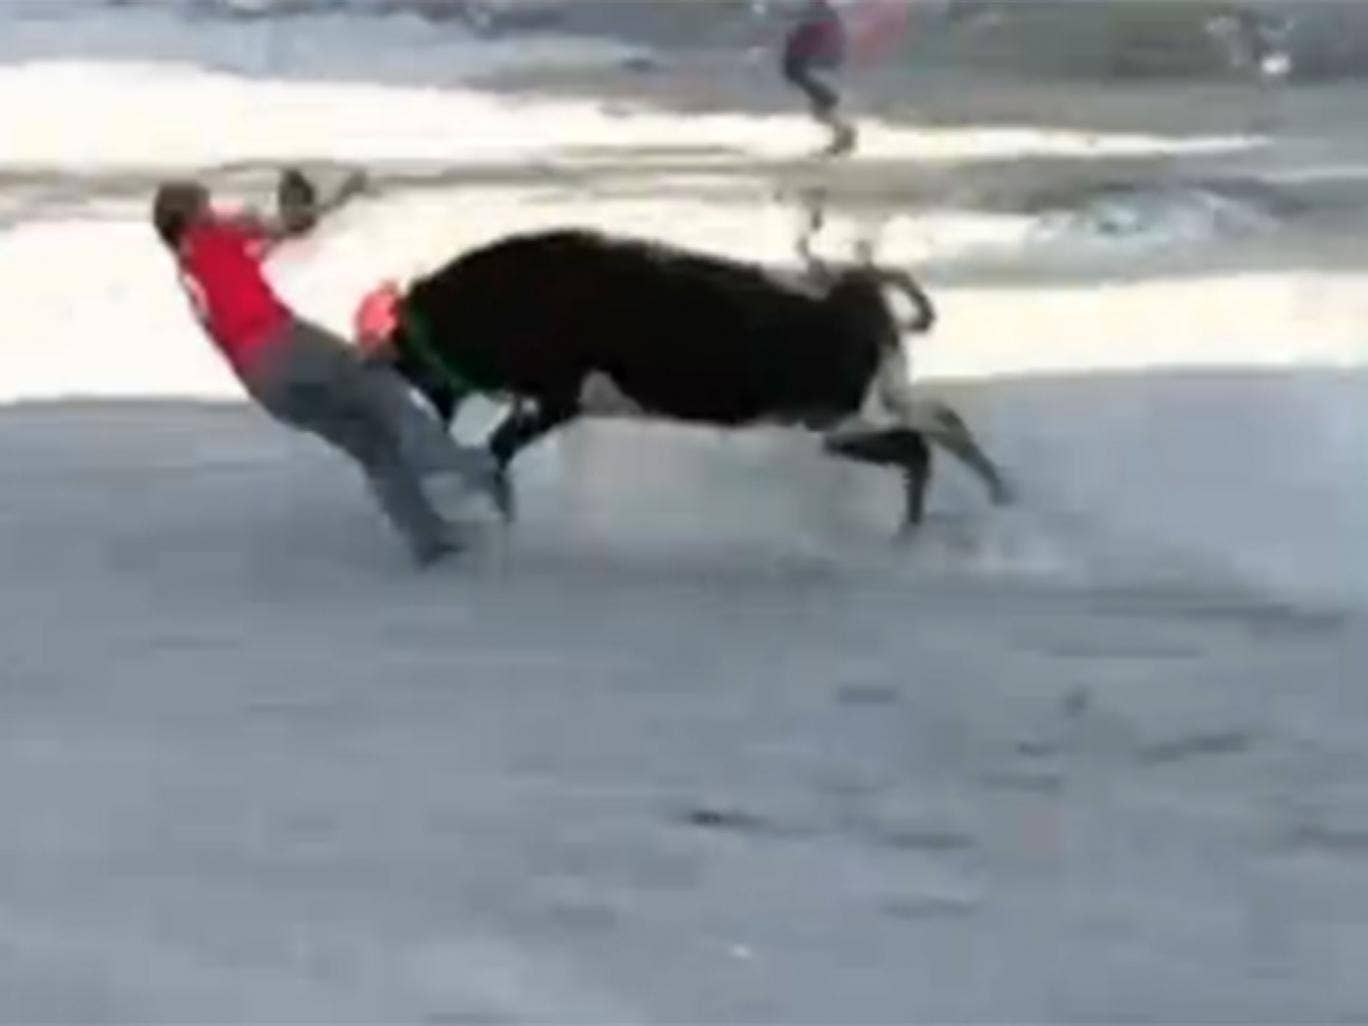 One man is knocked to the ground and attacked by the bull